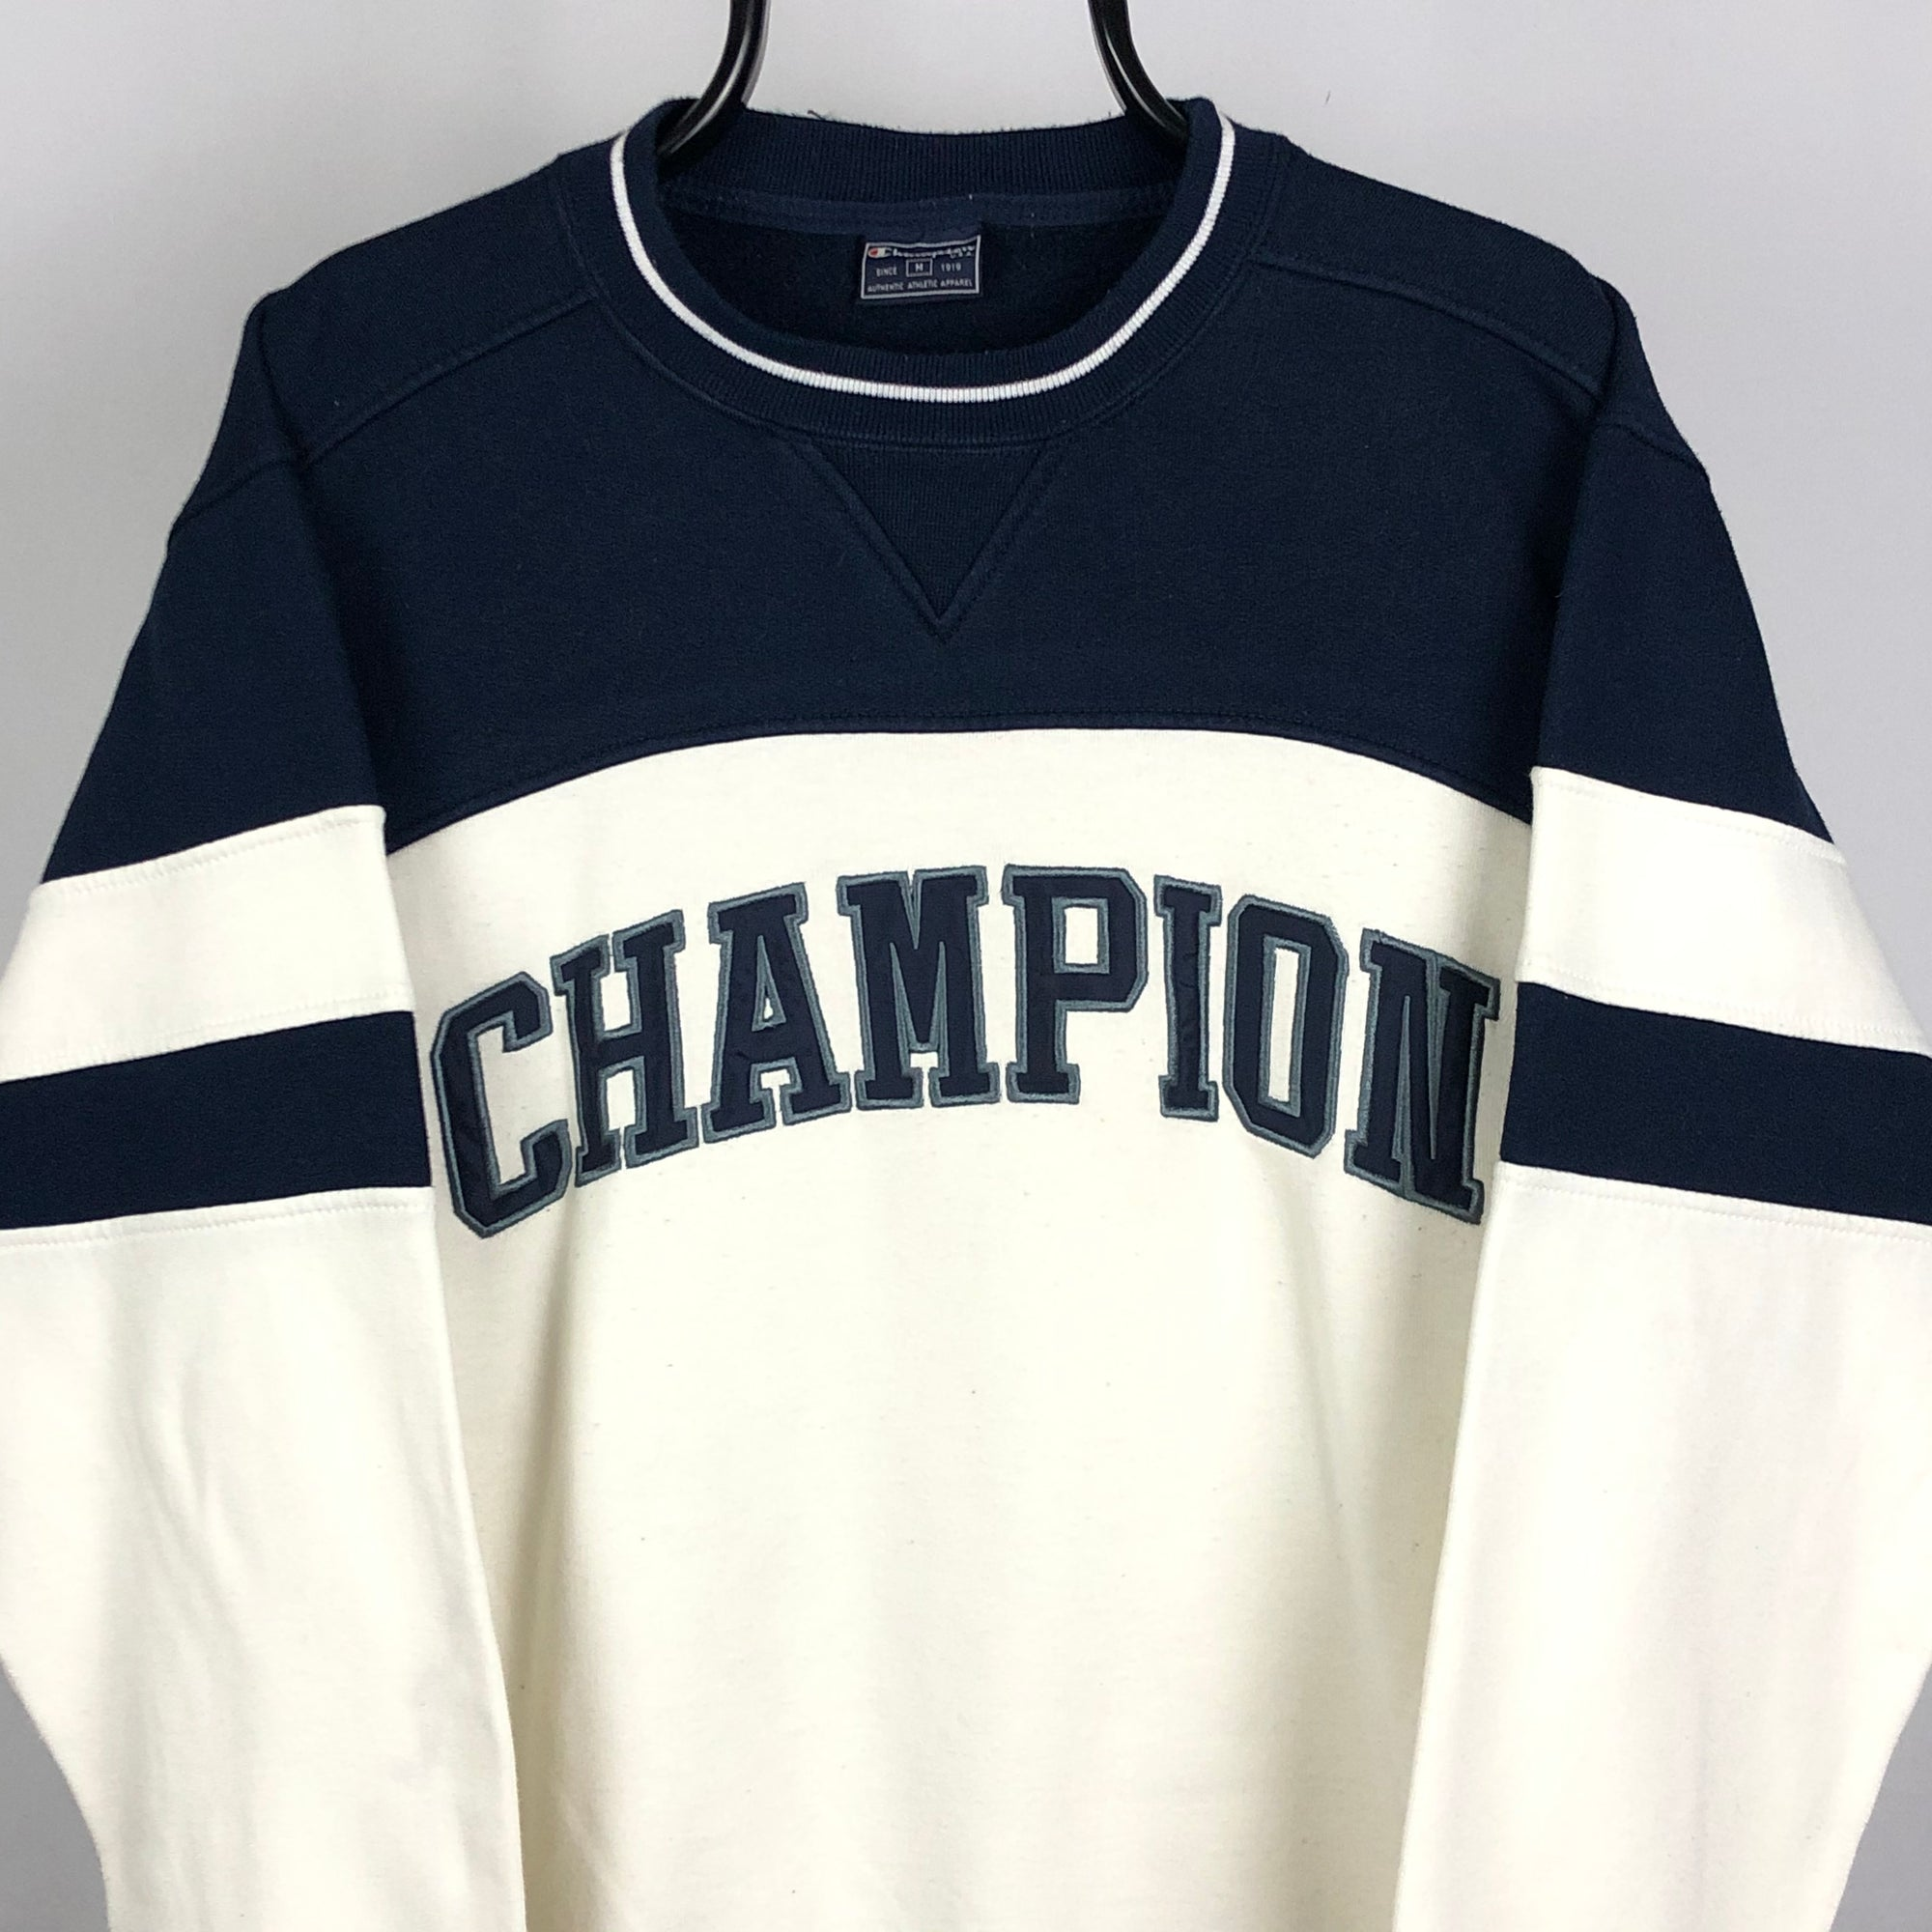 Vintage Champion Embroidered Spellout Sweatshirt in Navy/White - Men's Medium/Women's Large